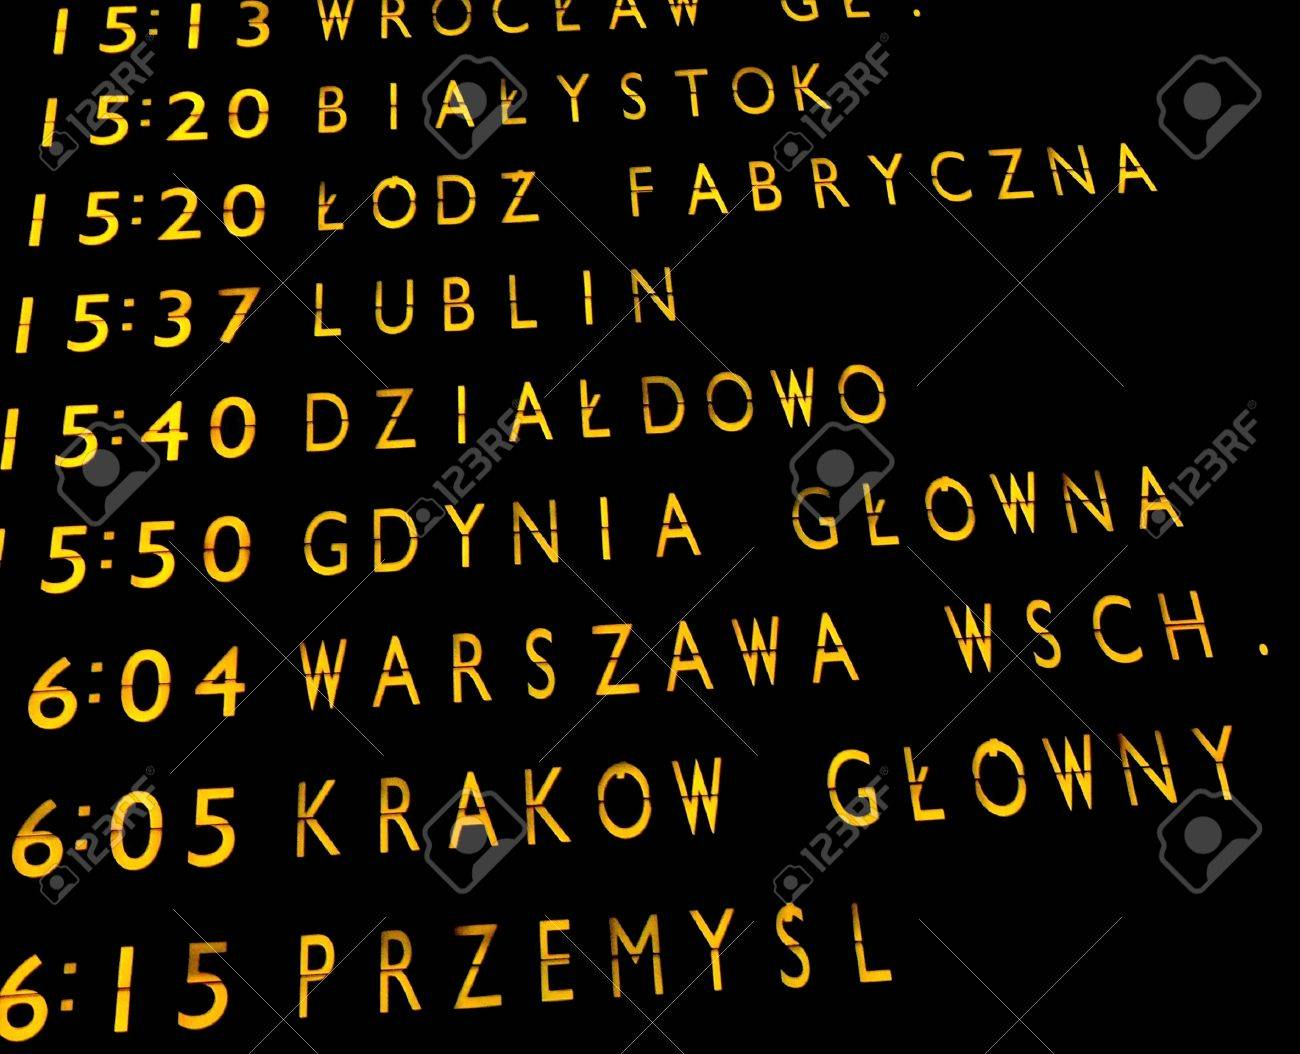 Trains departures board at the main train station in Warsaw Stock Photo - 1481645